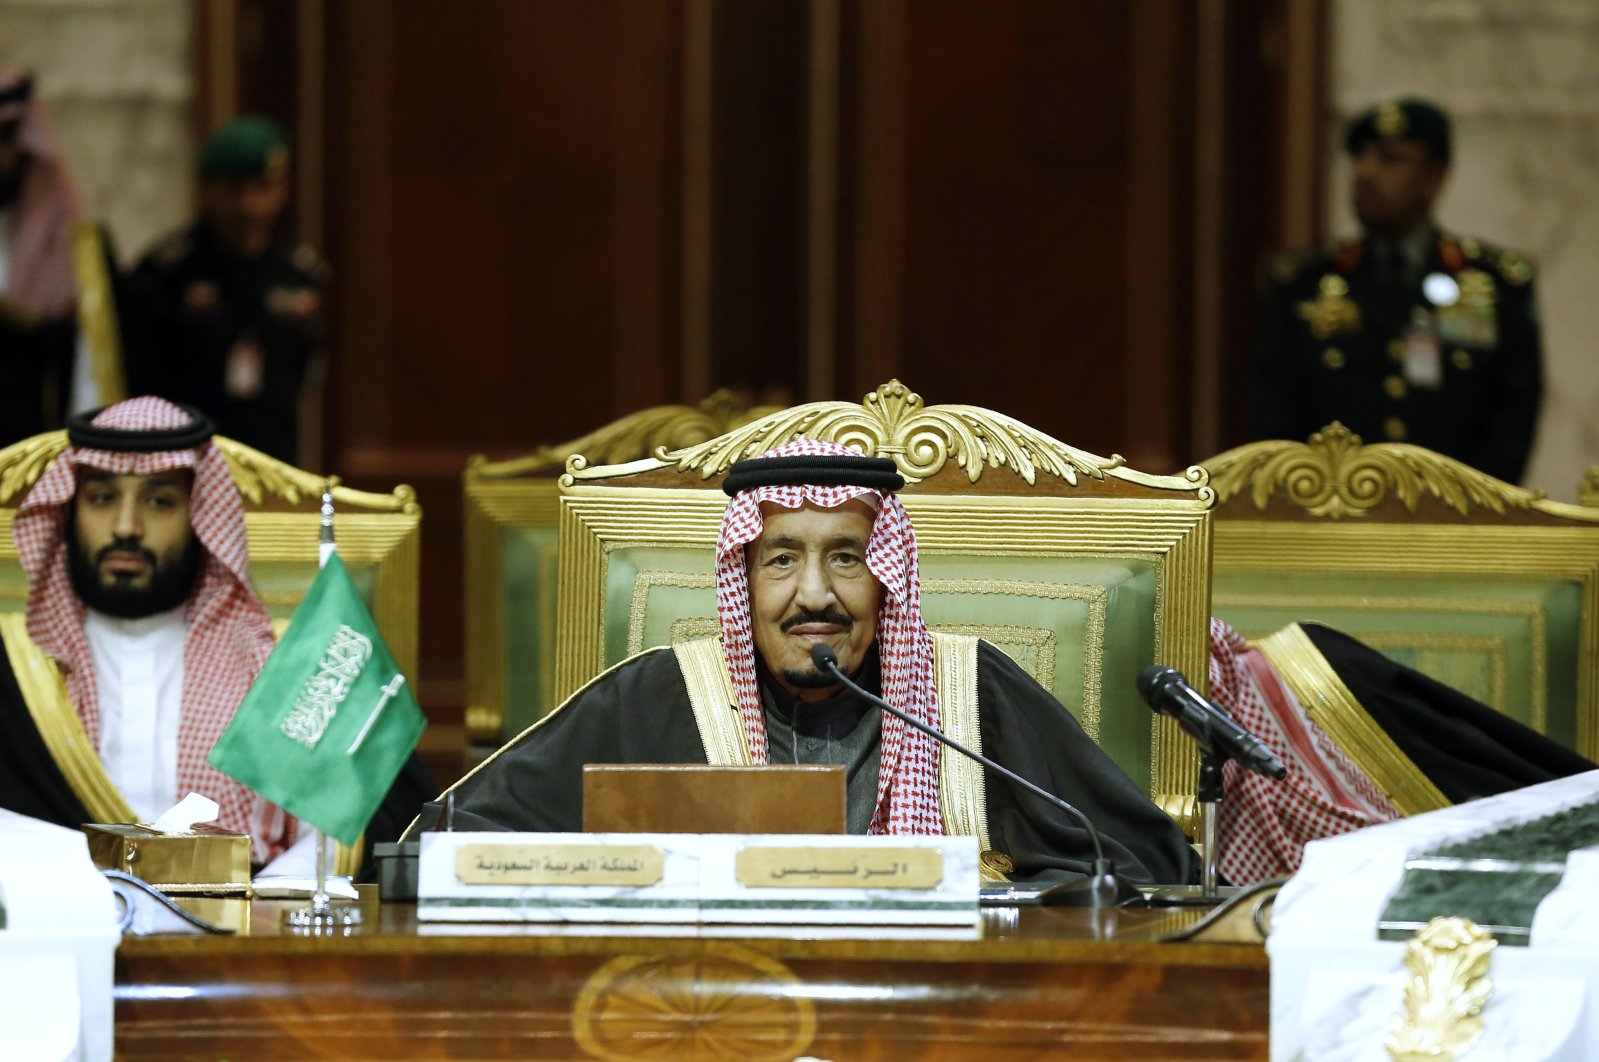 Saudi King Salman accompanied by Saudi Crown Prince Mohammed bin Salman (MBS) (L) chairs the 40th Gulf Cooperation Council (GCC) summit in Riyadh, Saudi Arabia, Dec. 10, 2019. (AP Photo)